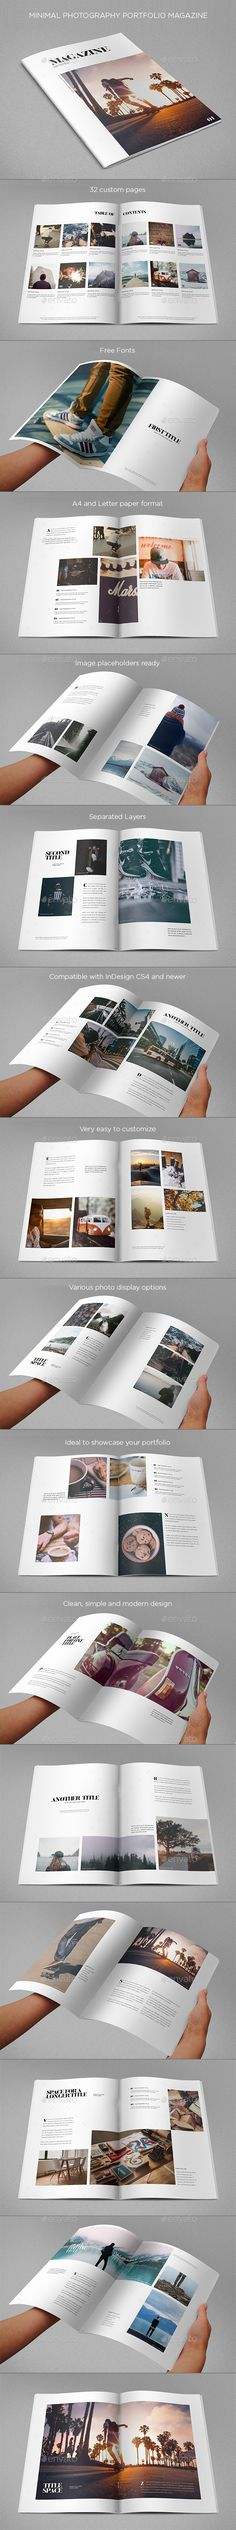 Minimal Photography Portfolio Magazine Template 	InDesign INDD. Download here: https://graphicriver.net/item/minimal-photography-portfolio-magazine/16987998?ref=ksioks